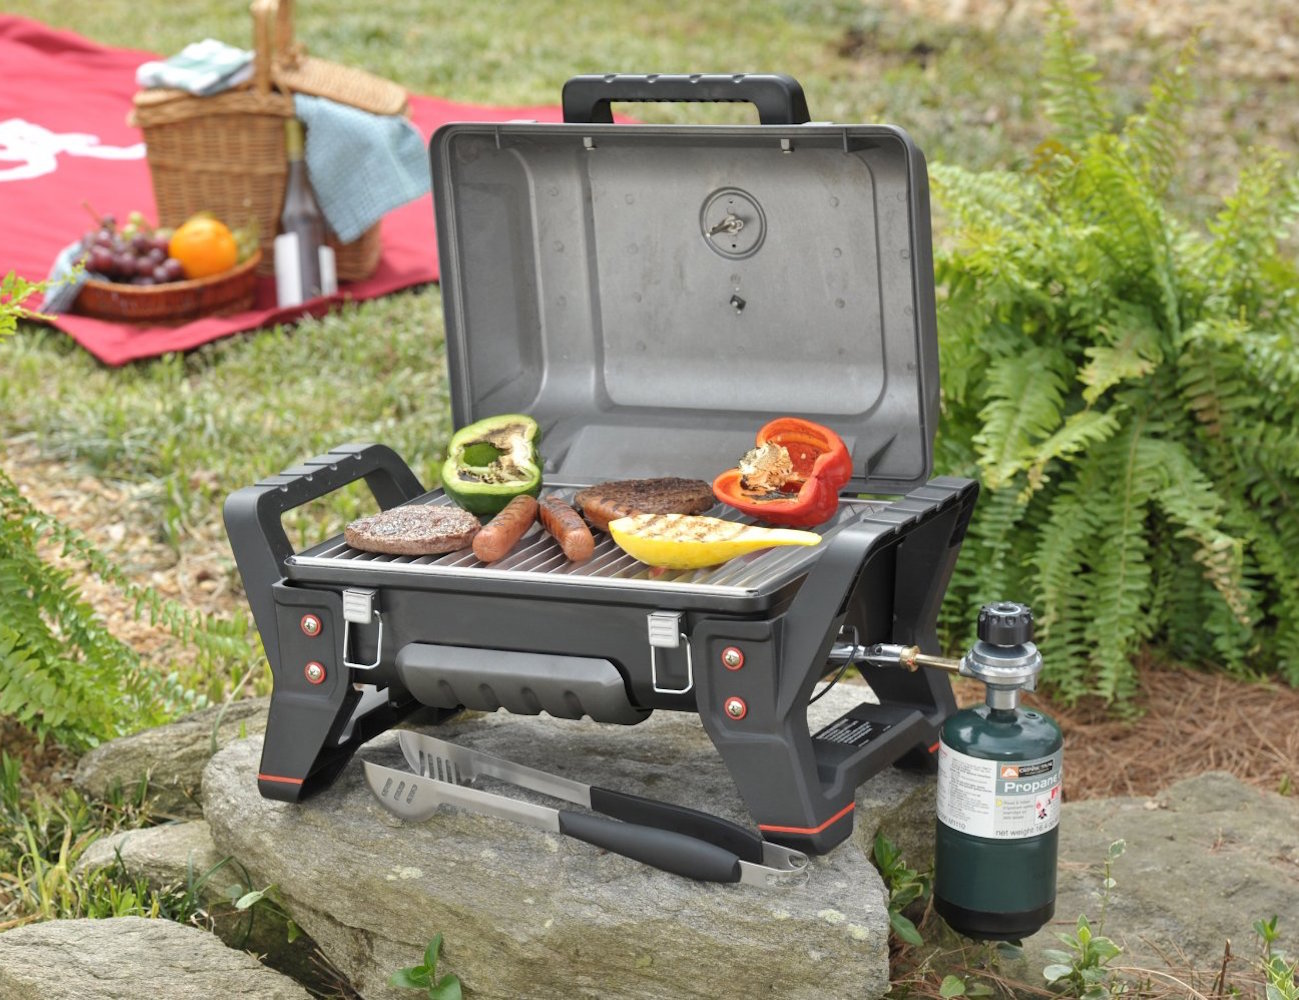 char broil grill2go x200 portable grill for on the go bbqs review. Black Bedroom Furniture Sets. Home Design Ideas